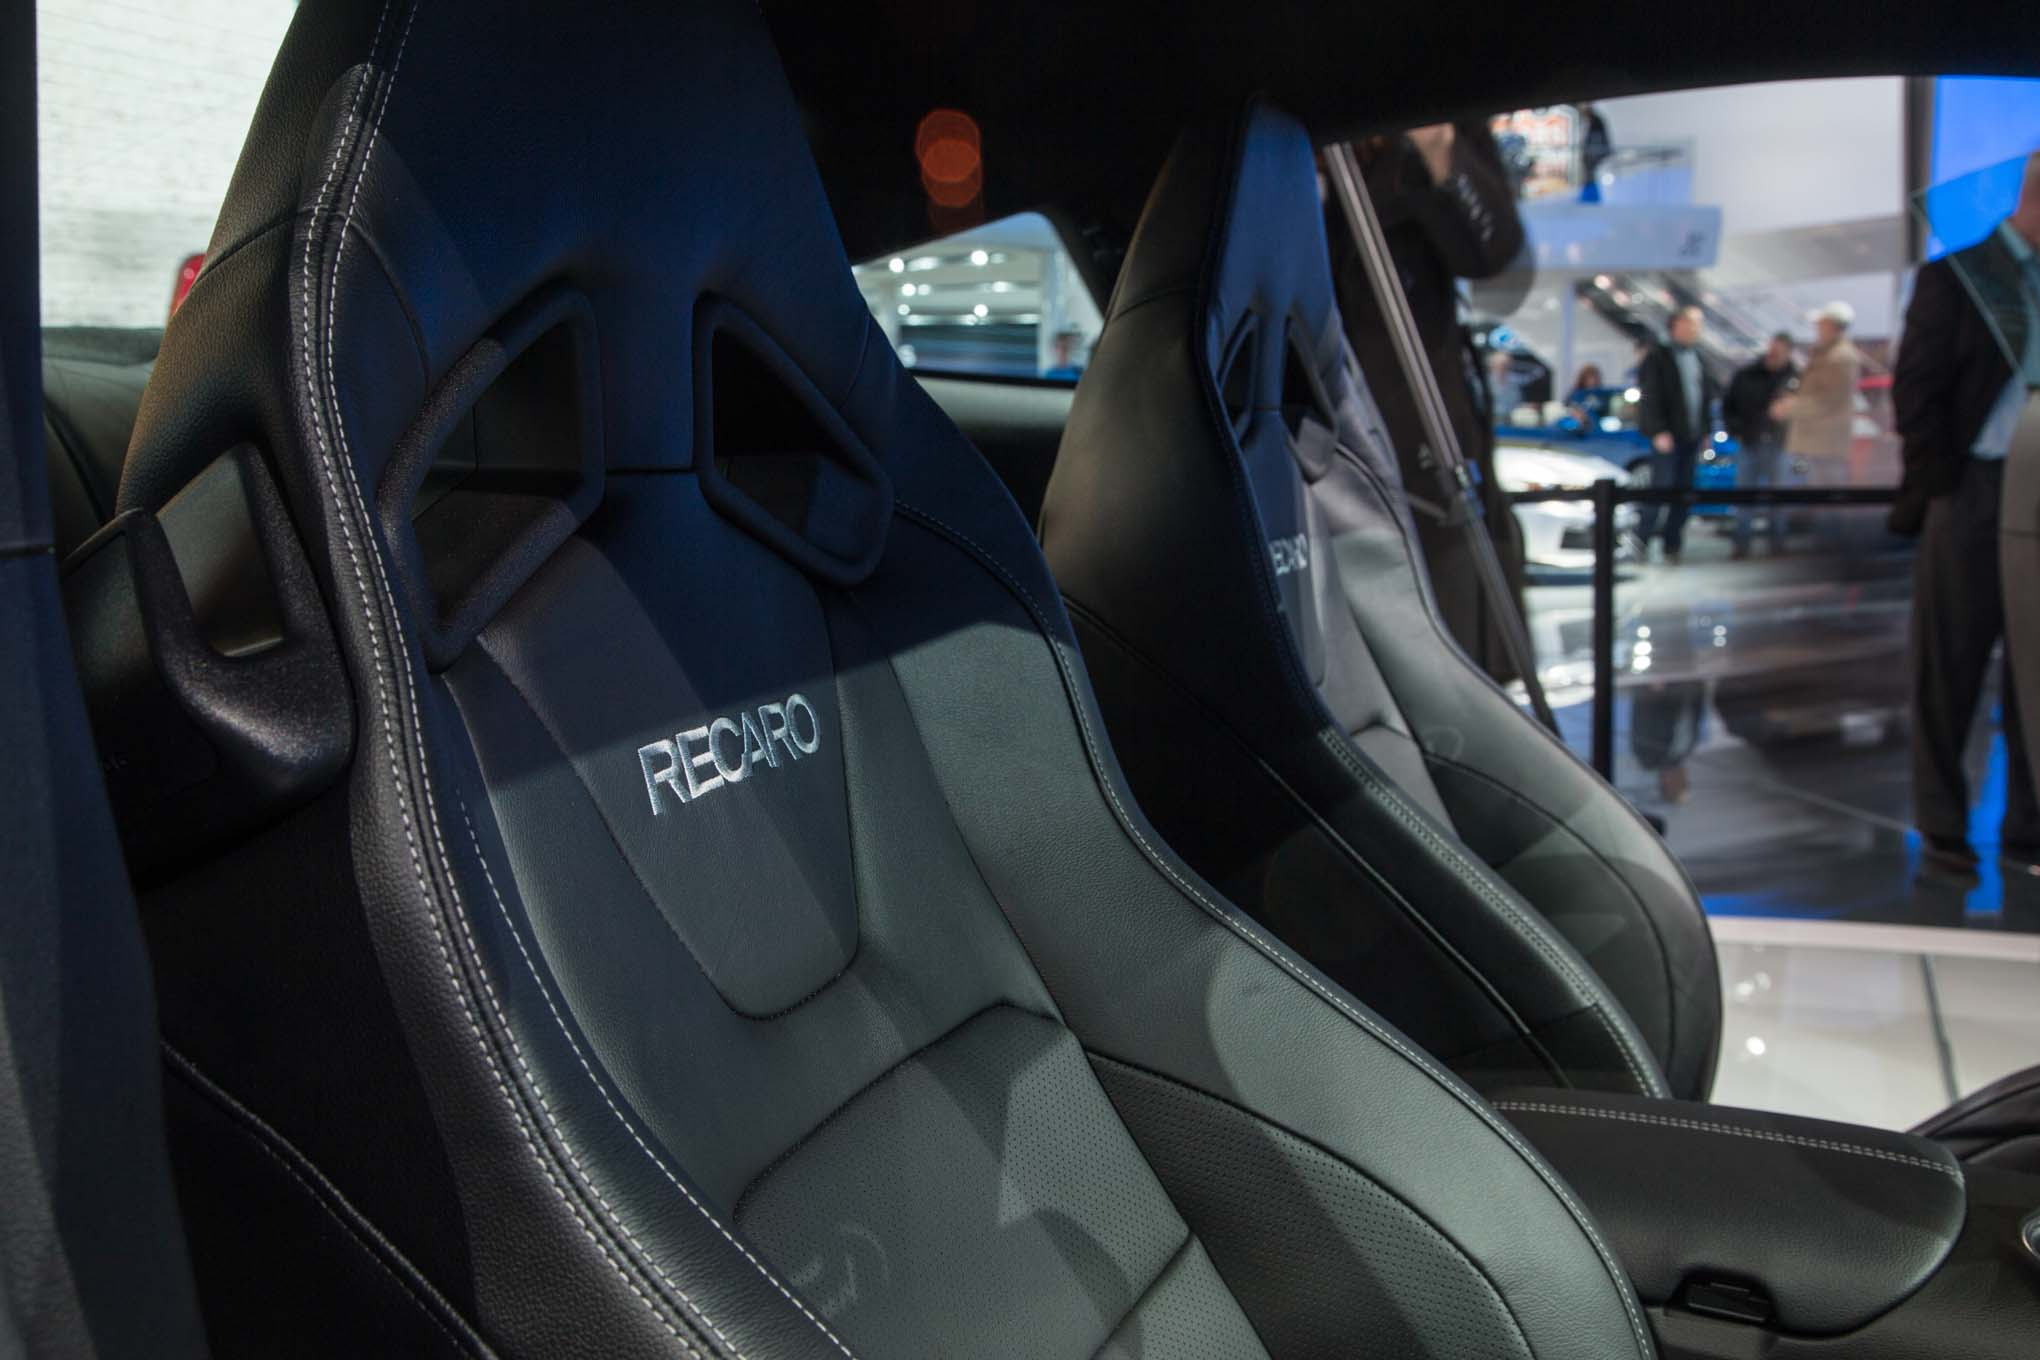 2018 Ford Mustang Gt Recaro Seats Photo 220050878 2018 Ford Mustang First Look First Refresh Since Ponycar Went Global